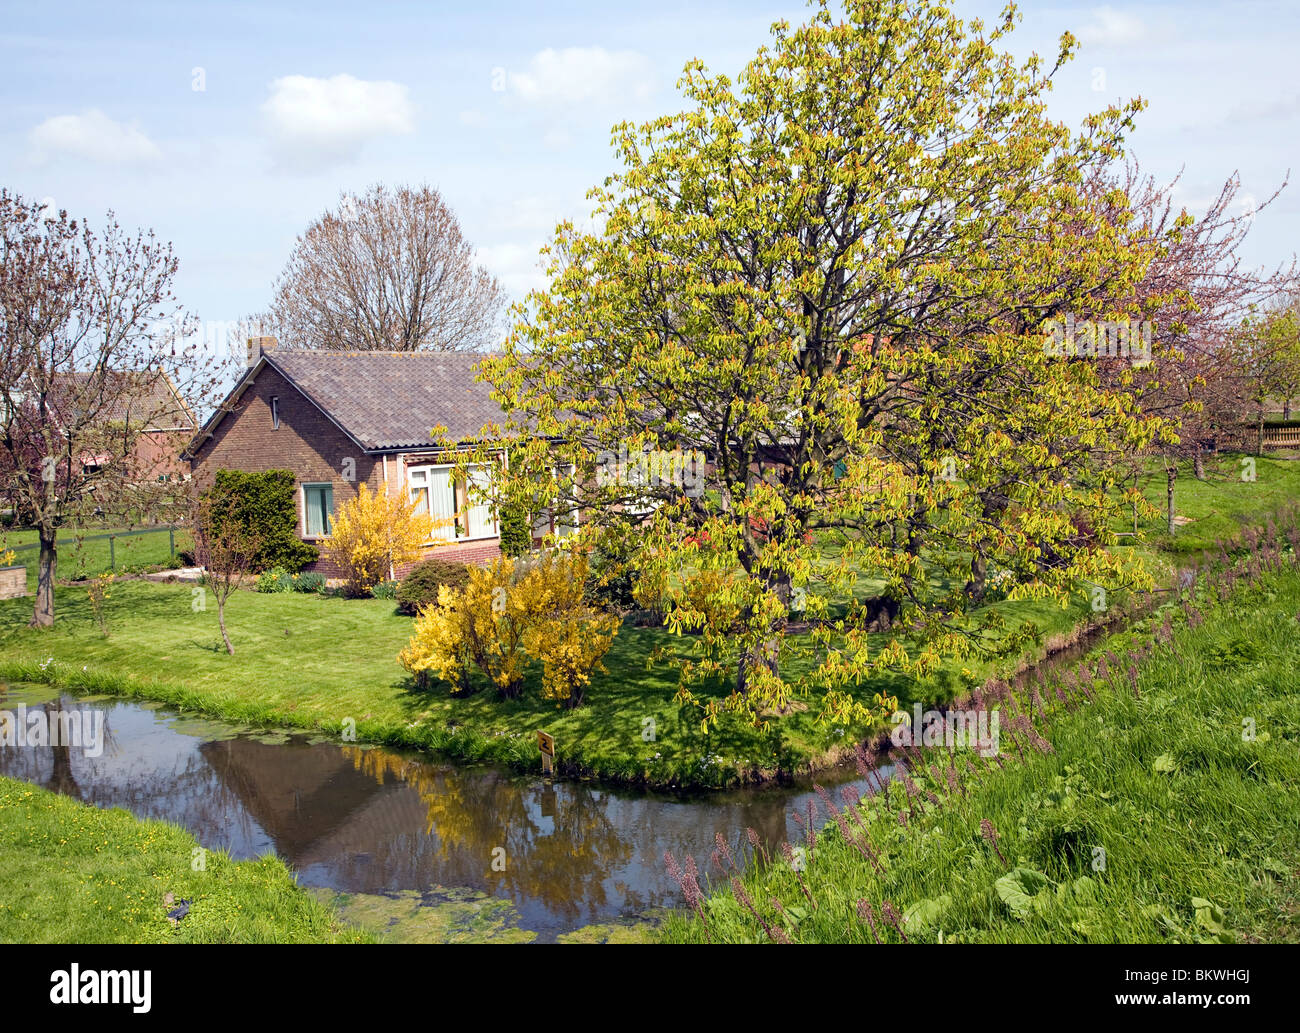 Farmhouse on small polder with canals, near Schipluiden, Netherlands - Stock Image